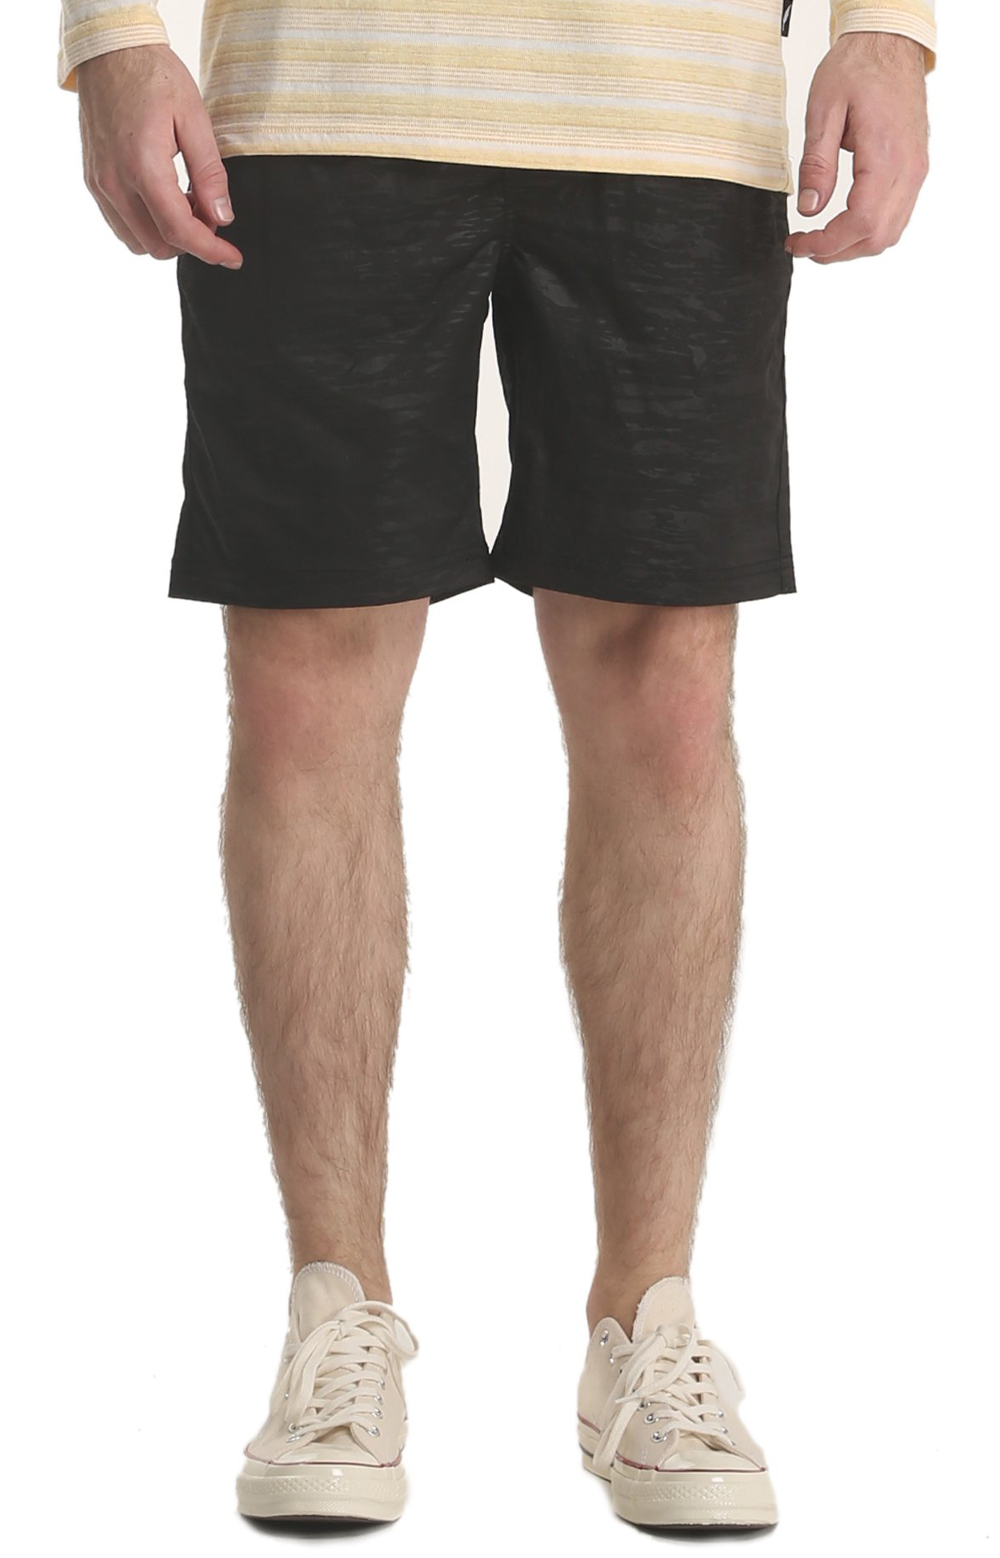 Ean Shorts - Black  2